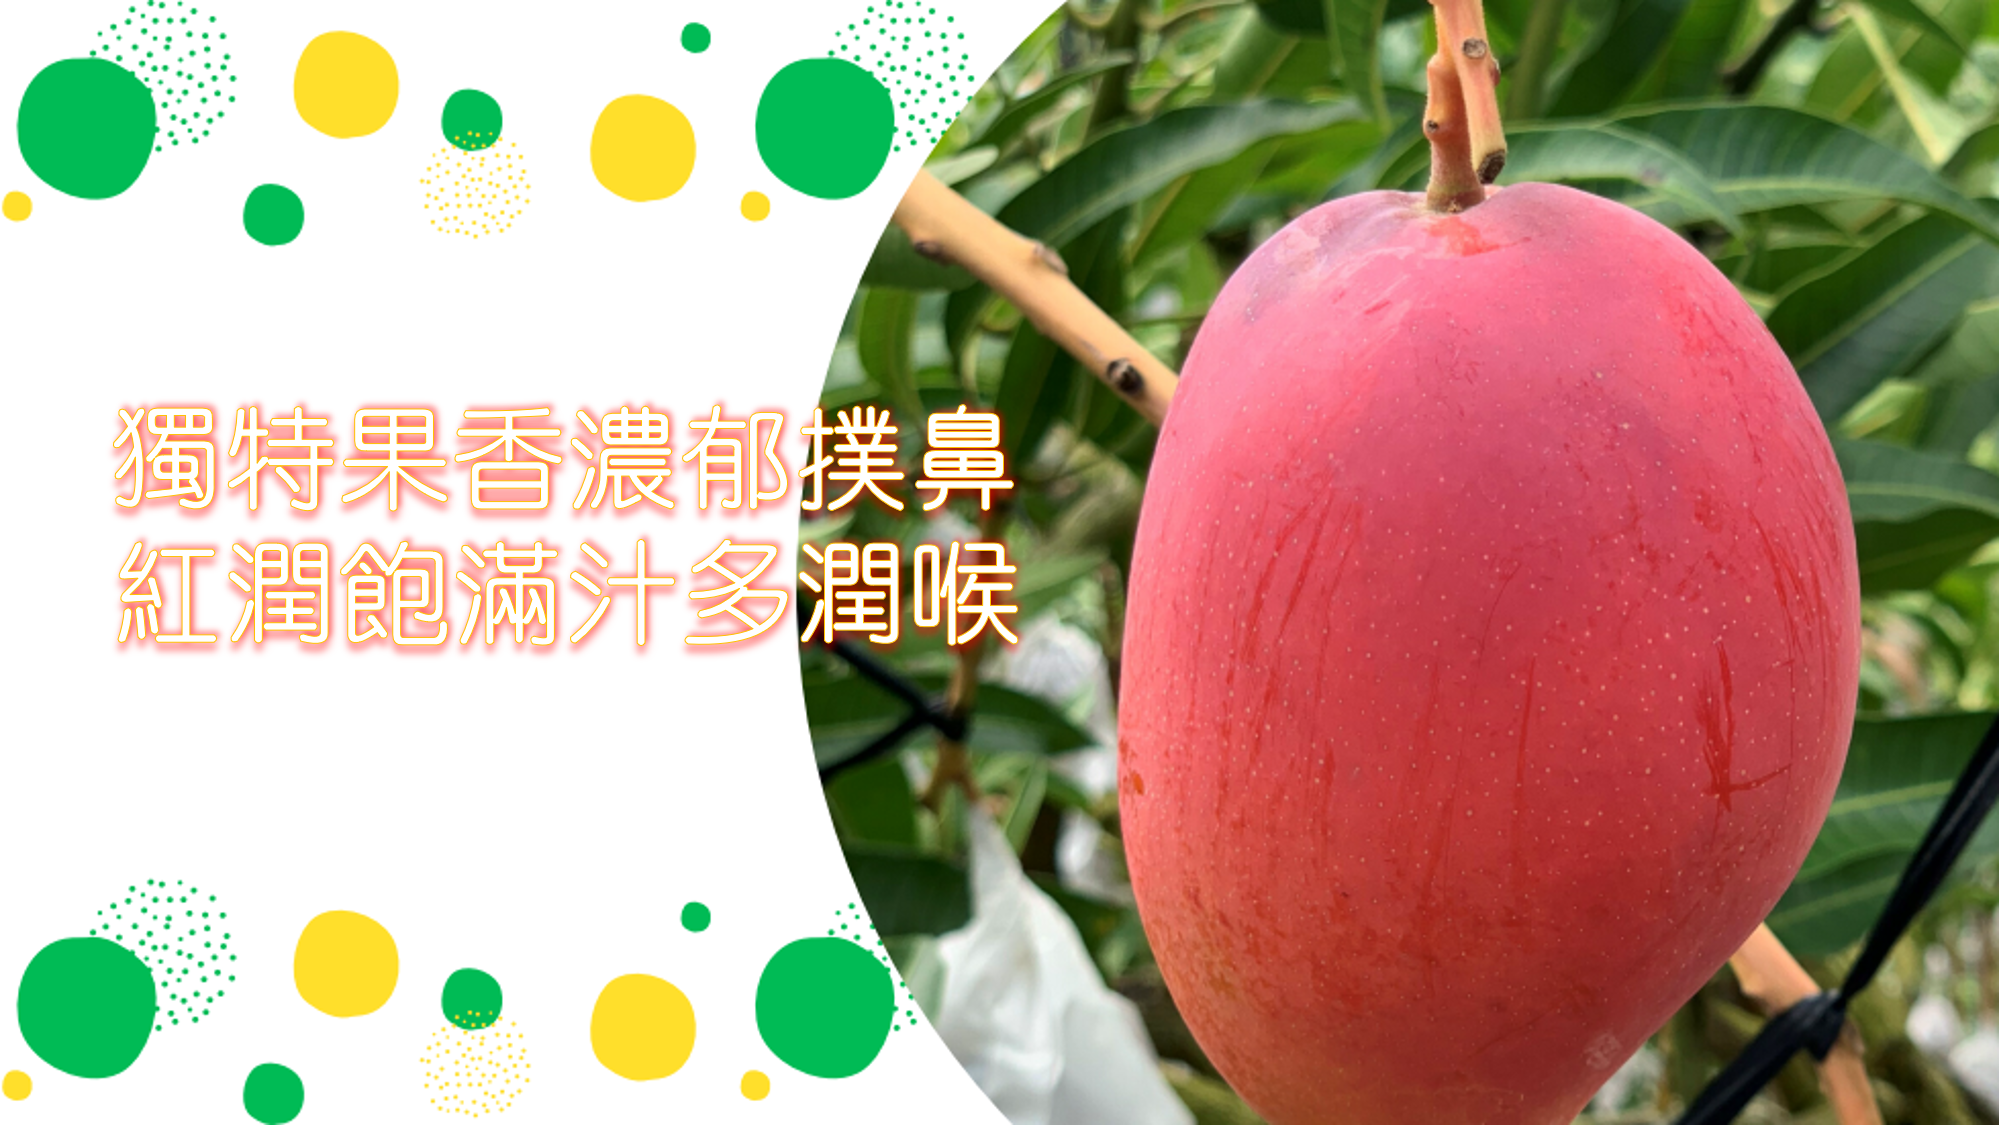 a taiwan apple mango with strong fragrance, juice and sweety